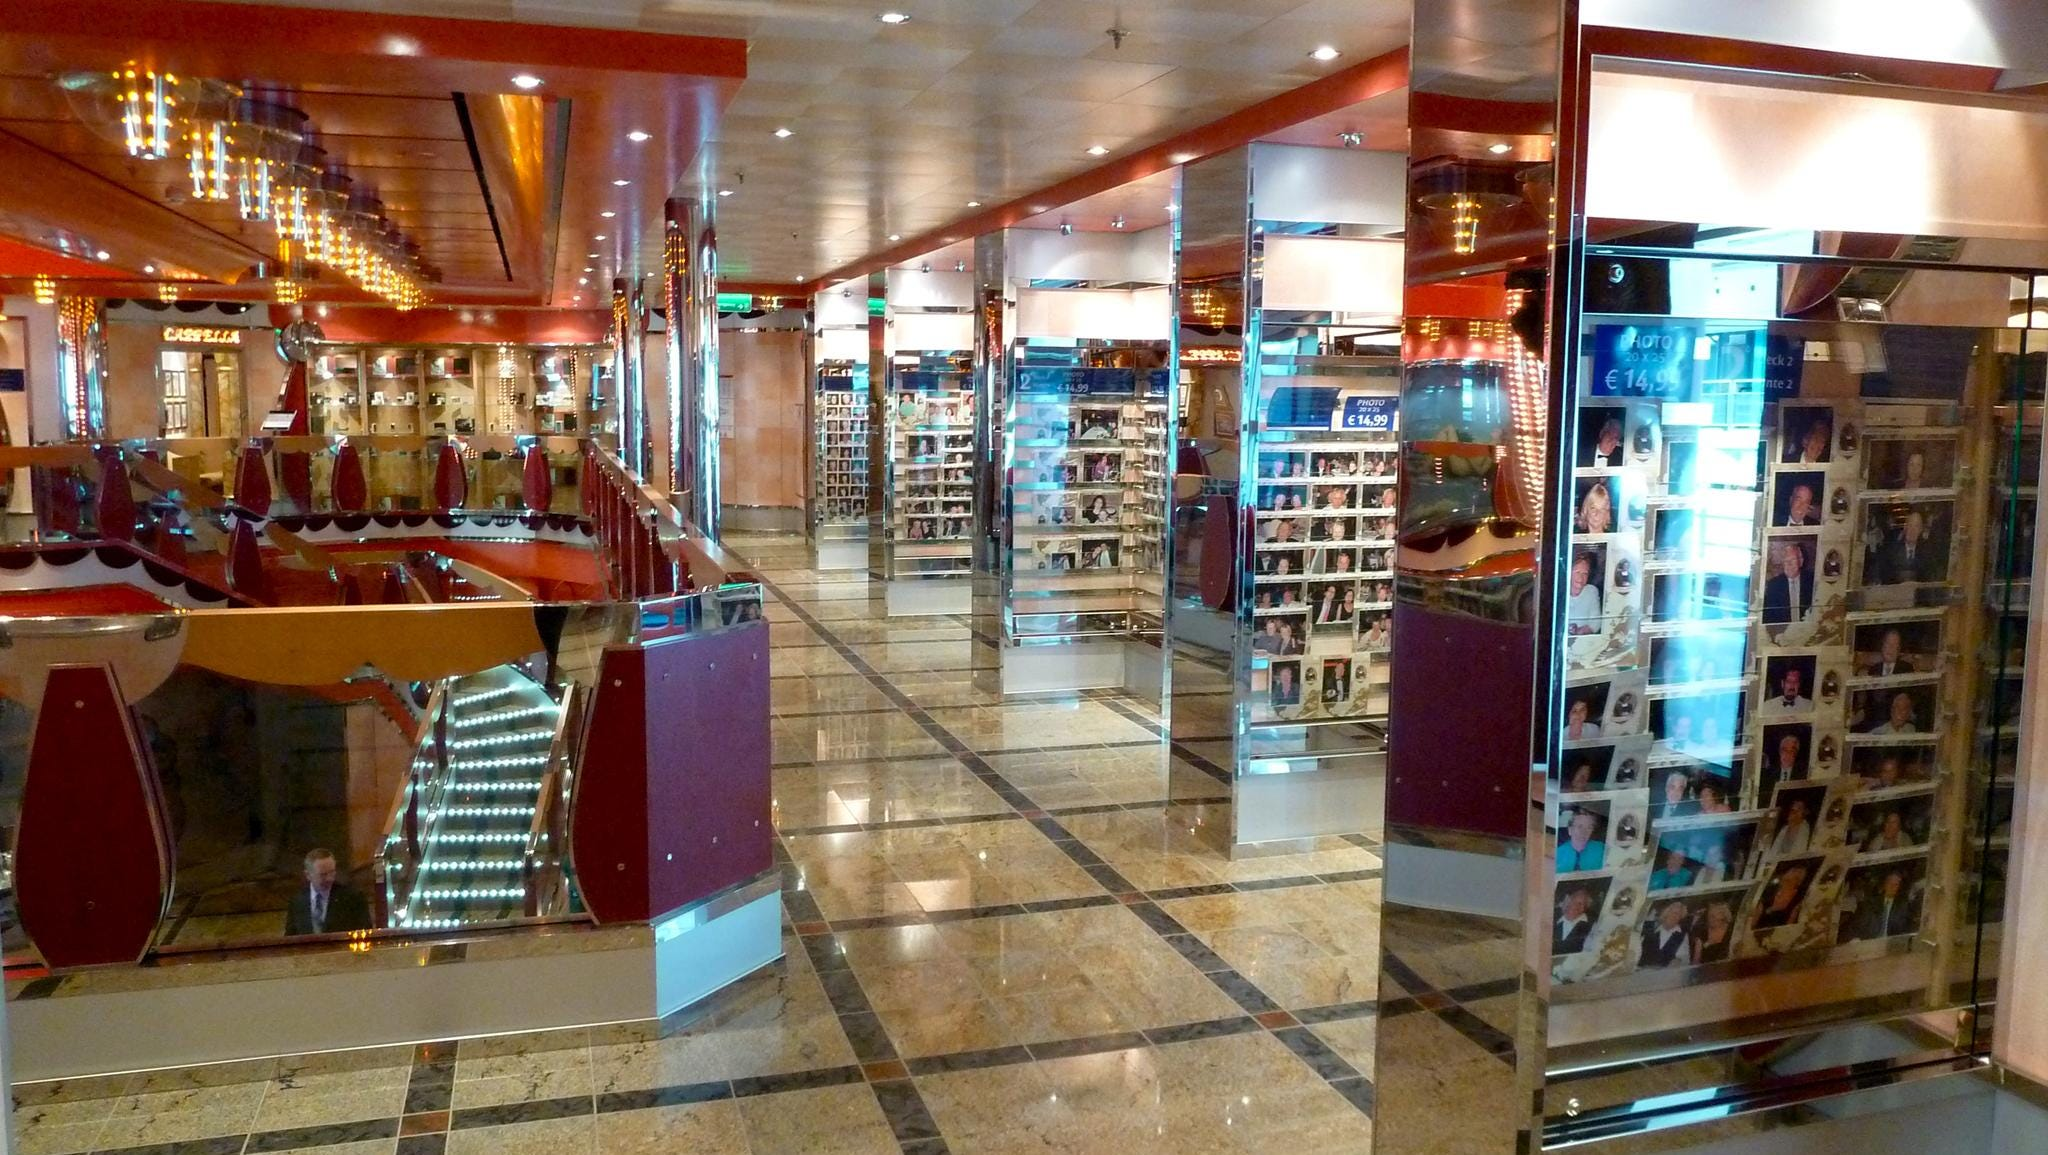 Photo Galleries flank either side of the Azalea Deck-level of the Atrio delle Delizie.